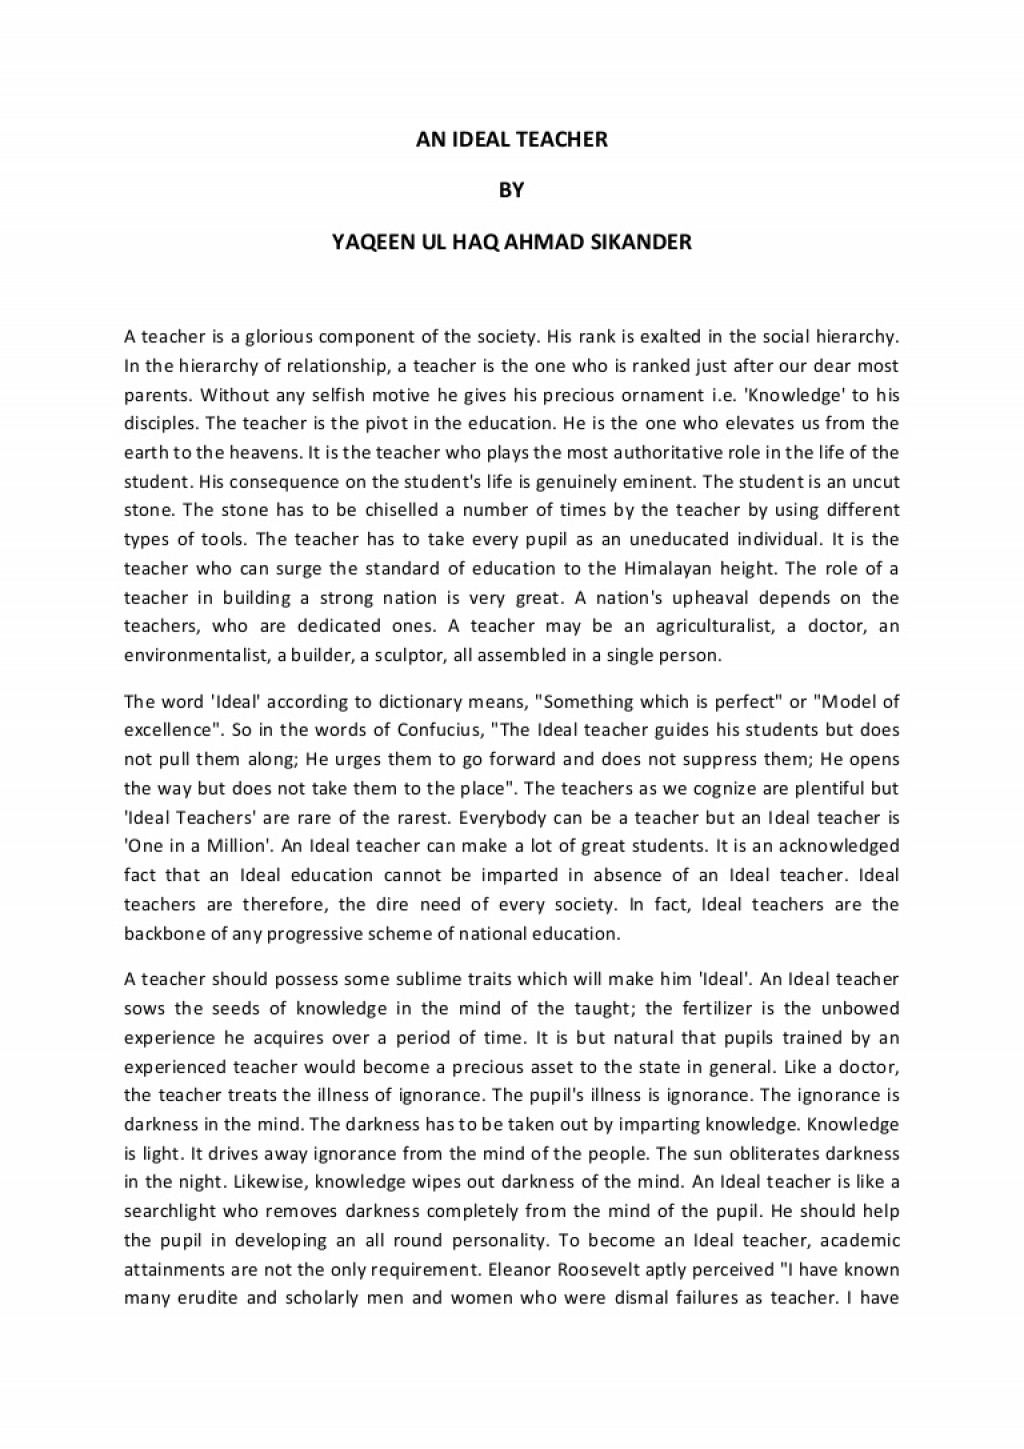 014 Why Do You Want To Teacher Essay Anidealteacher Phpapp02 Thumbnail Impressive Be A Pdf Would Become Large